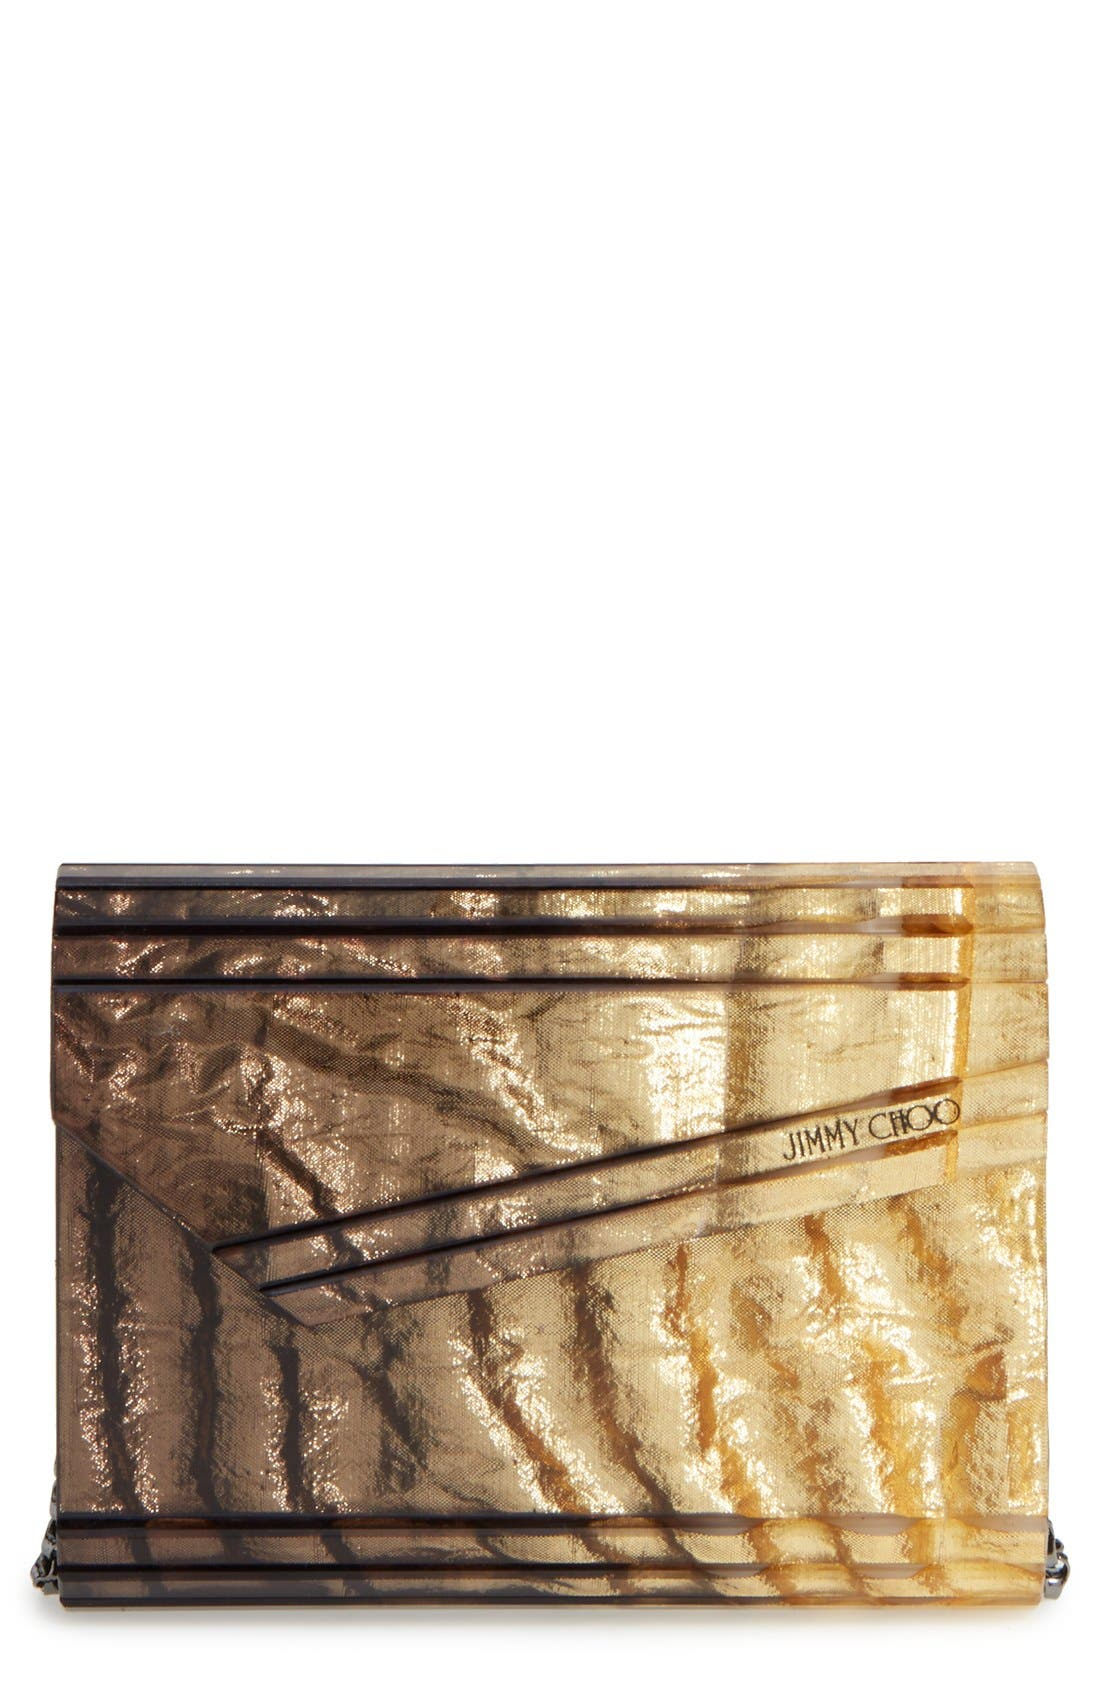 JIMMY CHOO 'Candy - Dégradé Crinkle' Clutch